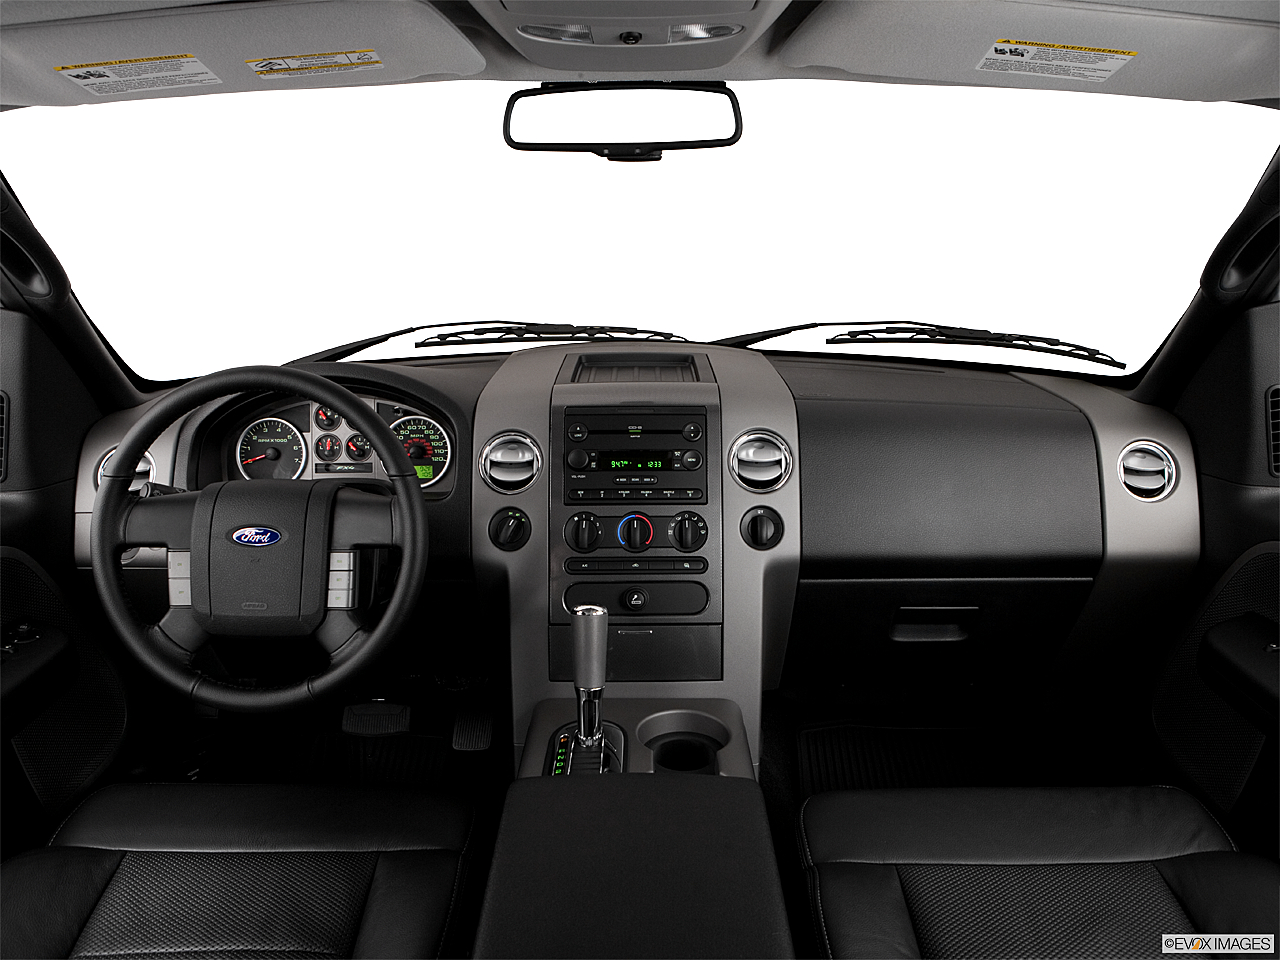 2006 Ford F-150 FX4, centered wide dash shot